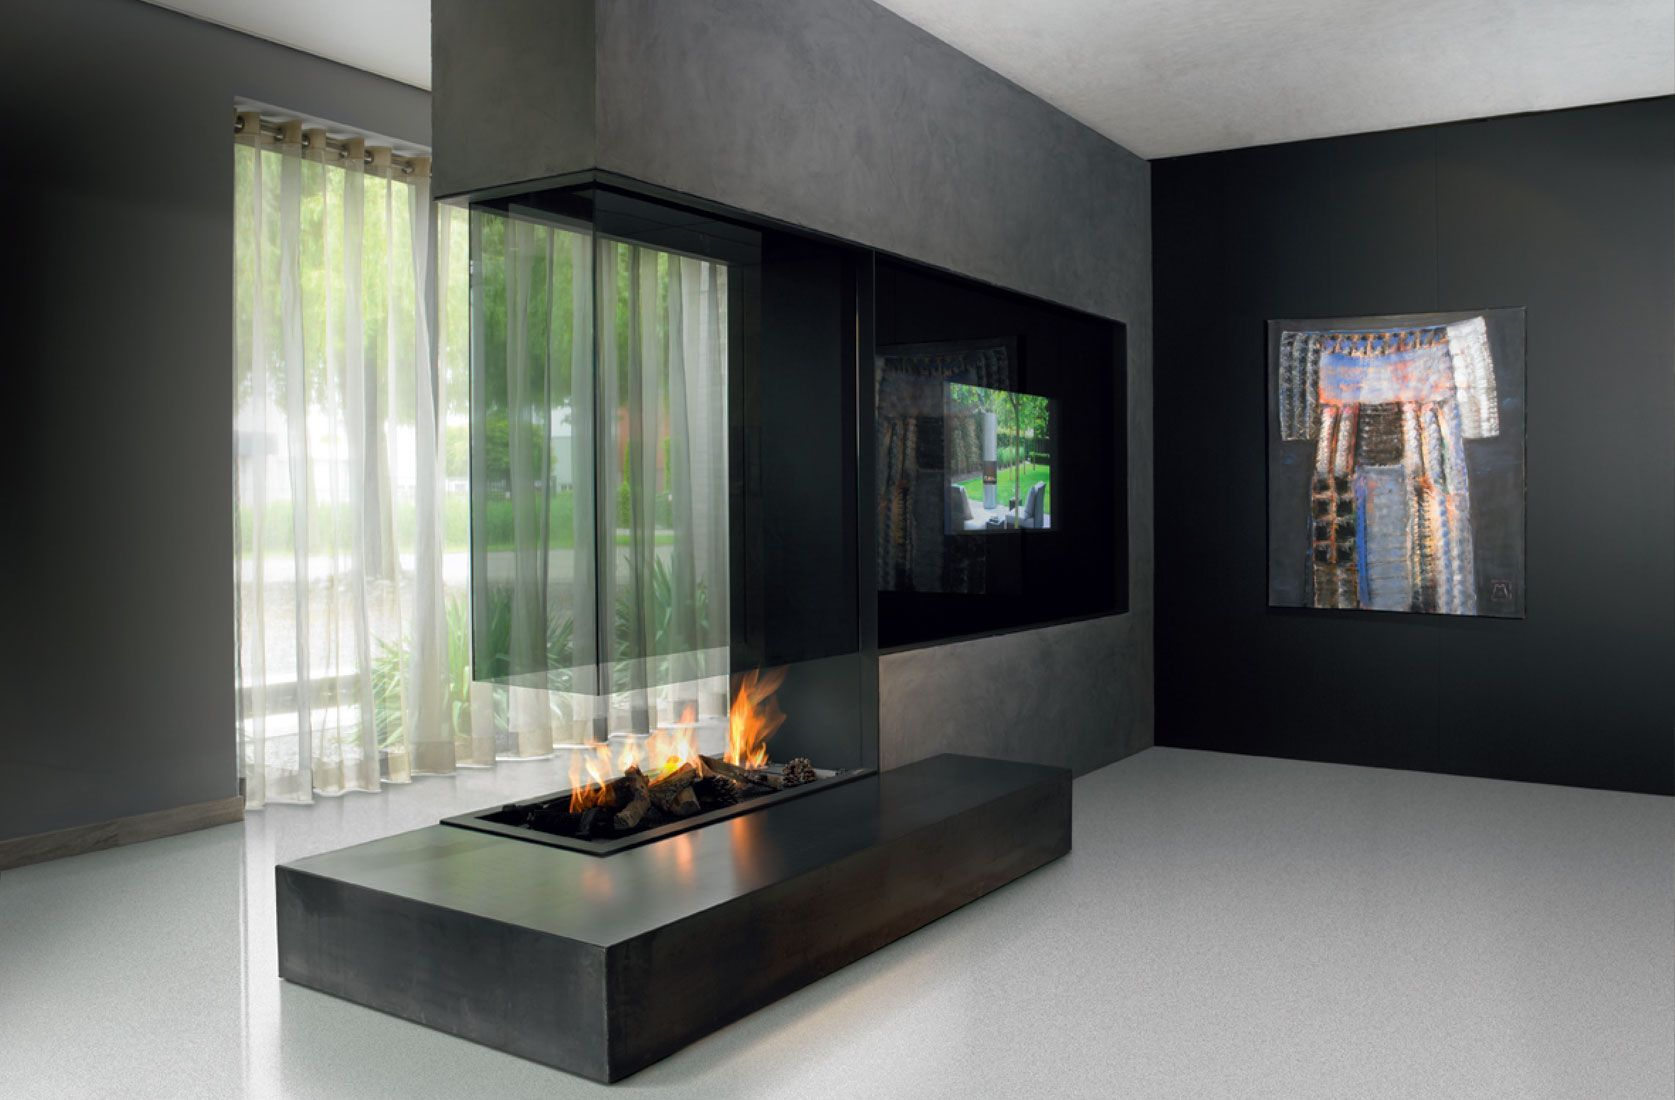 fireplace 73spec tunnel fire kitchen pinterest double sided